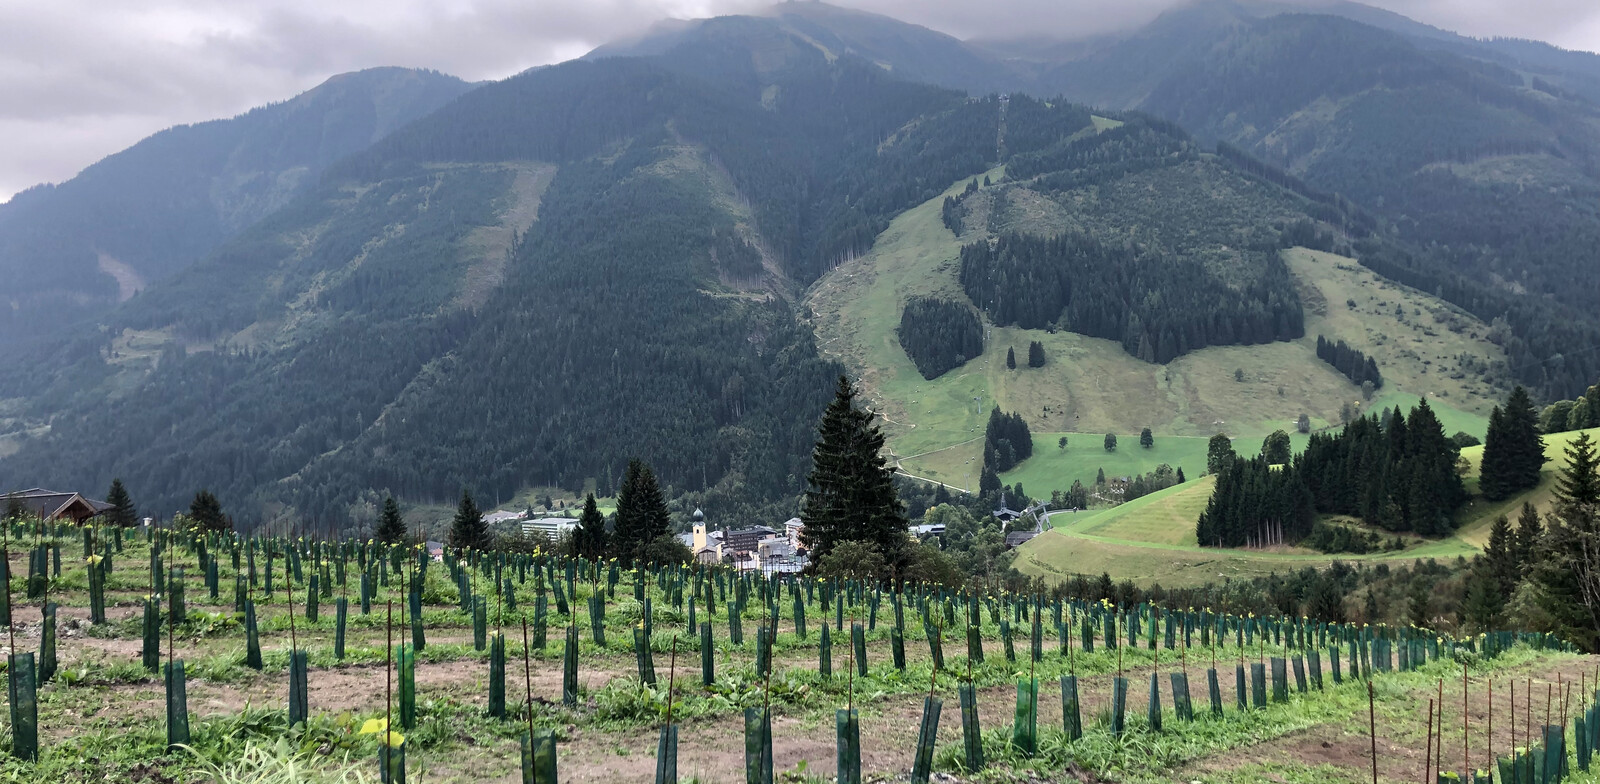 The vineyard of the Alpenwinzerei